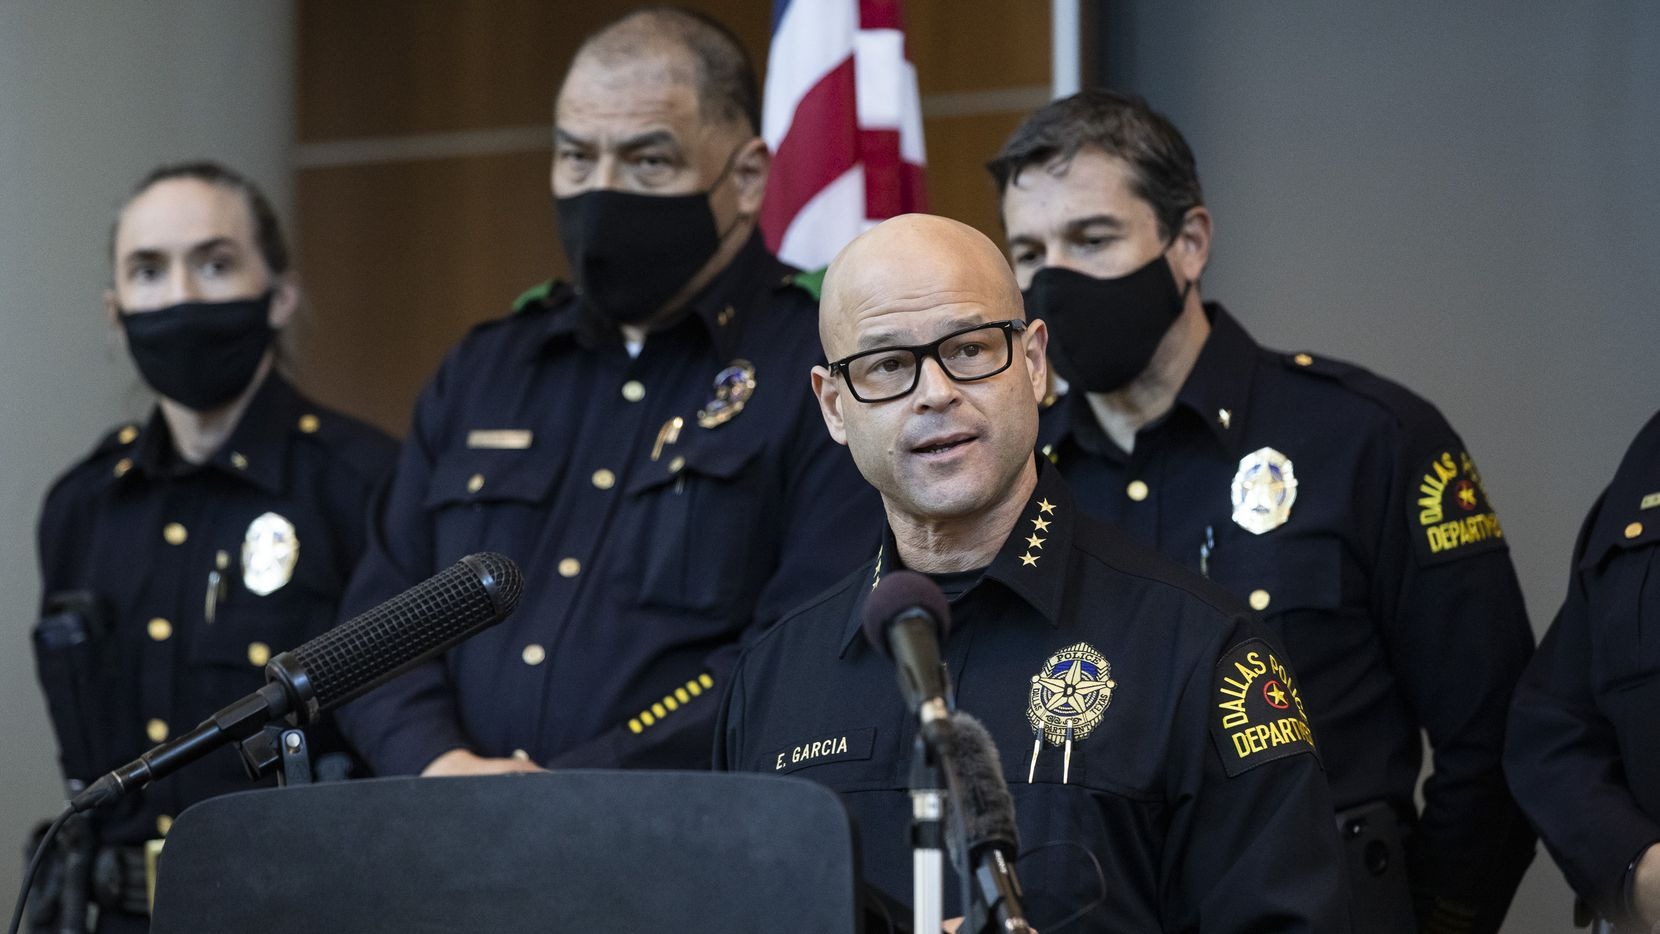 Chief Eddie García (center) speaks with media during a news conference regarding the arrest and capital murder charges against Officer Bryan Riser on Thursday.